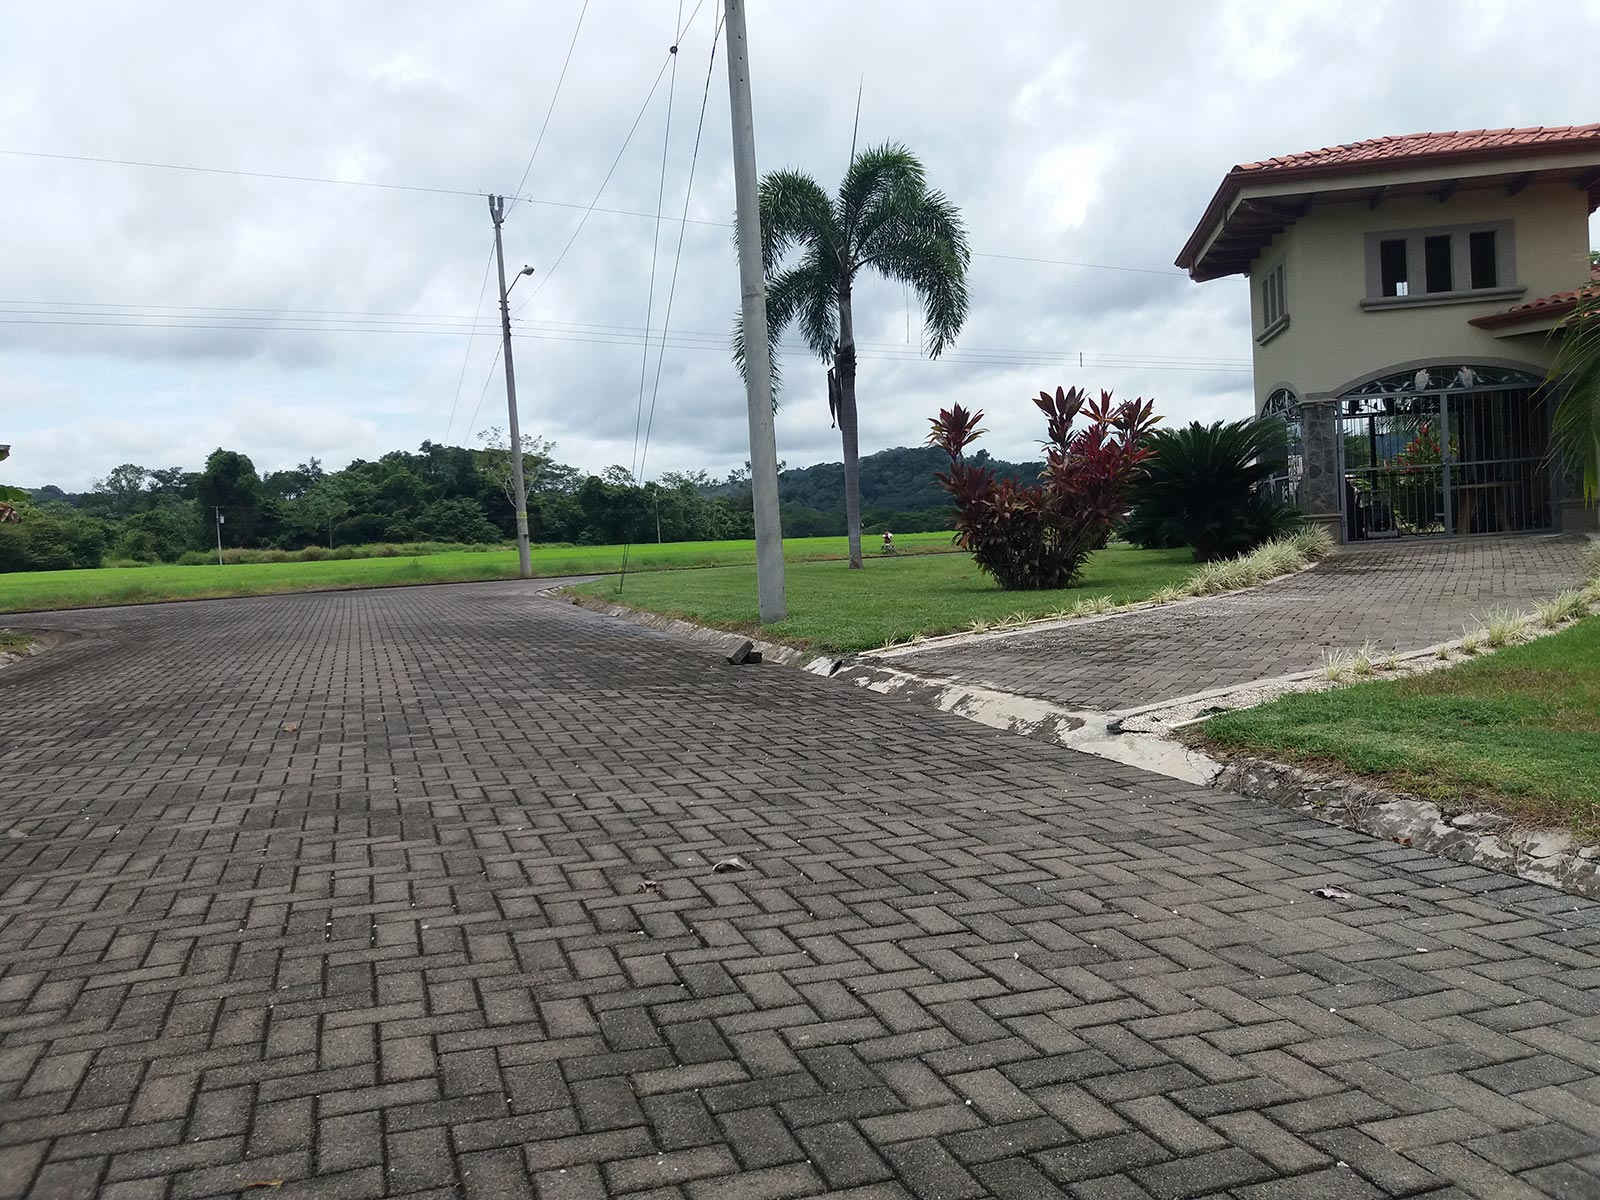 Walking distance from the Beach,Exclusive Gated Community,Sites ready to Build in Costa Rica,Lotes to build in Central Pacific,Cobbled Streets,Investment oportunity in Costa Rica